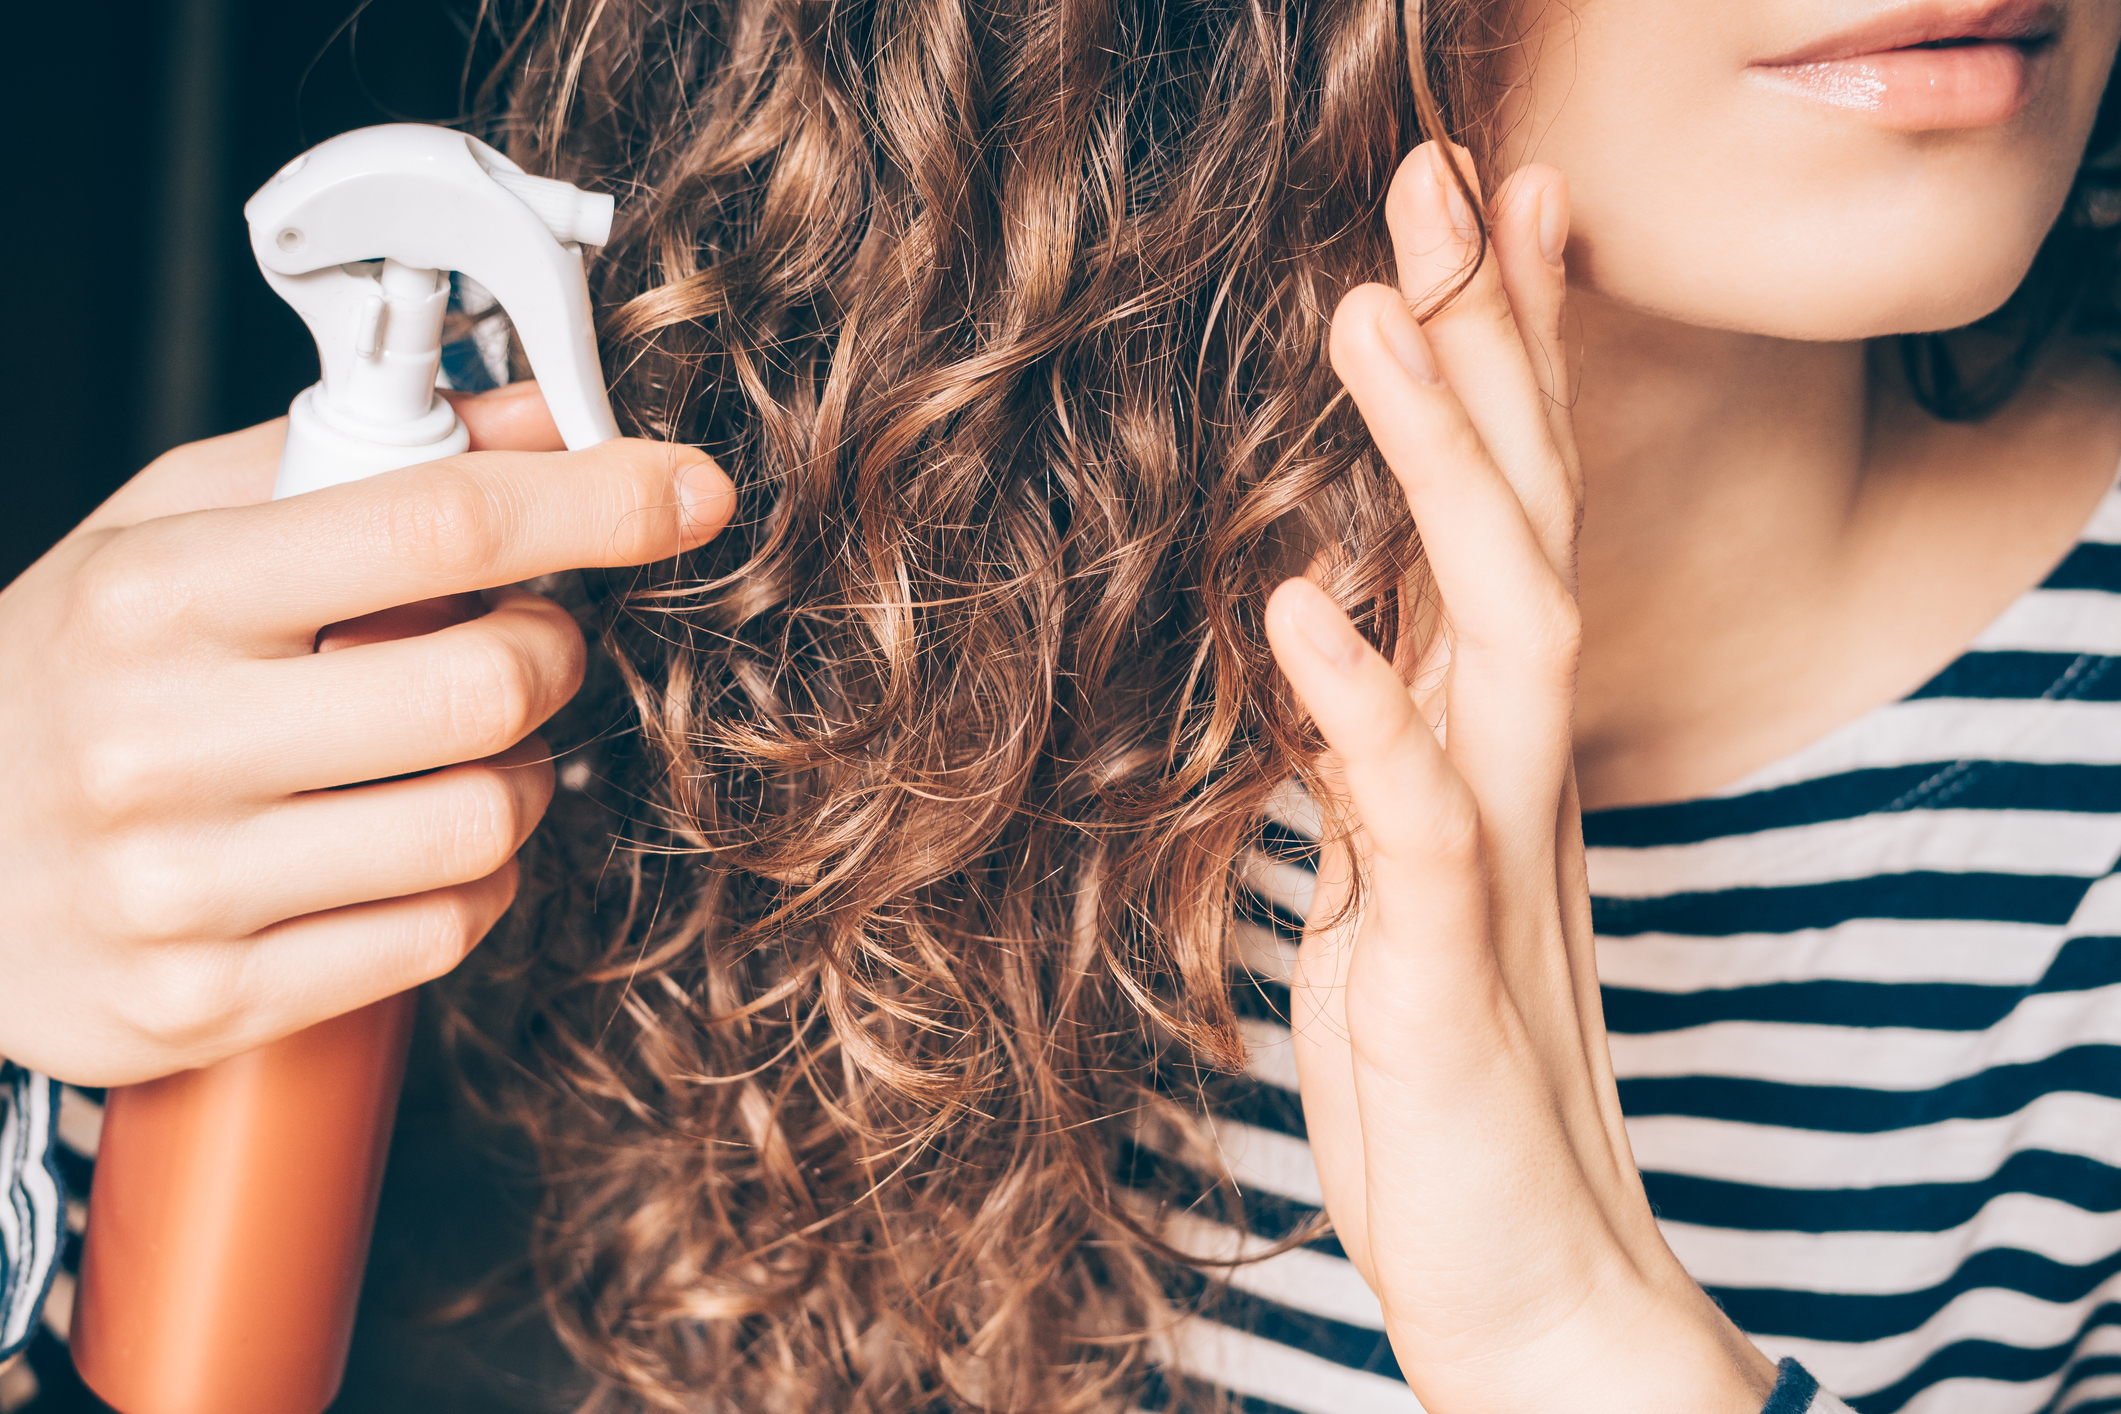 Woman applying spray on curly brown hair close-up